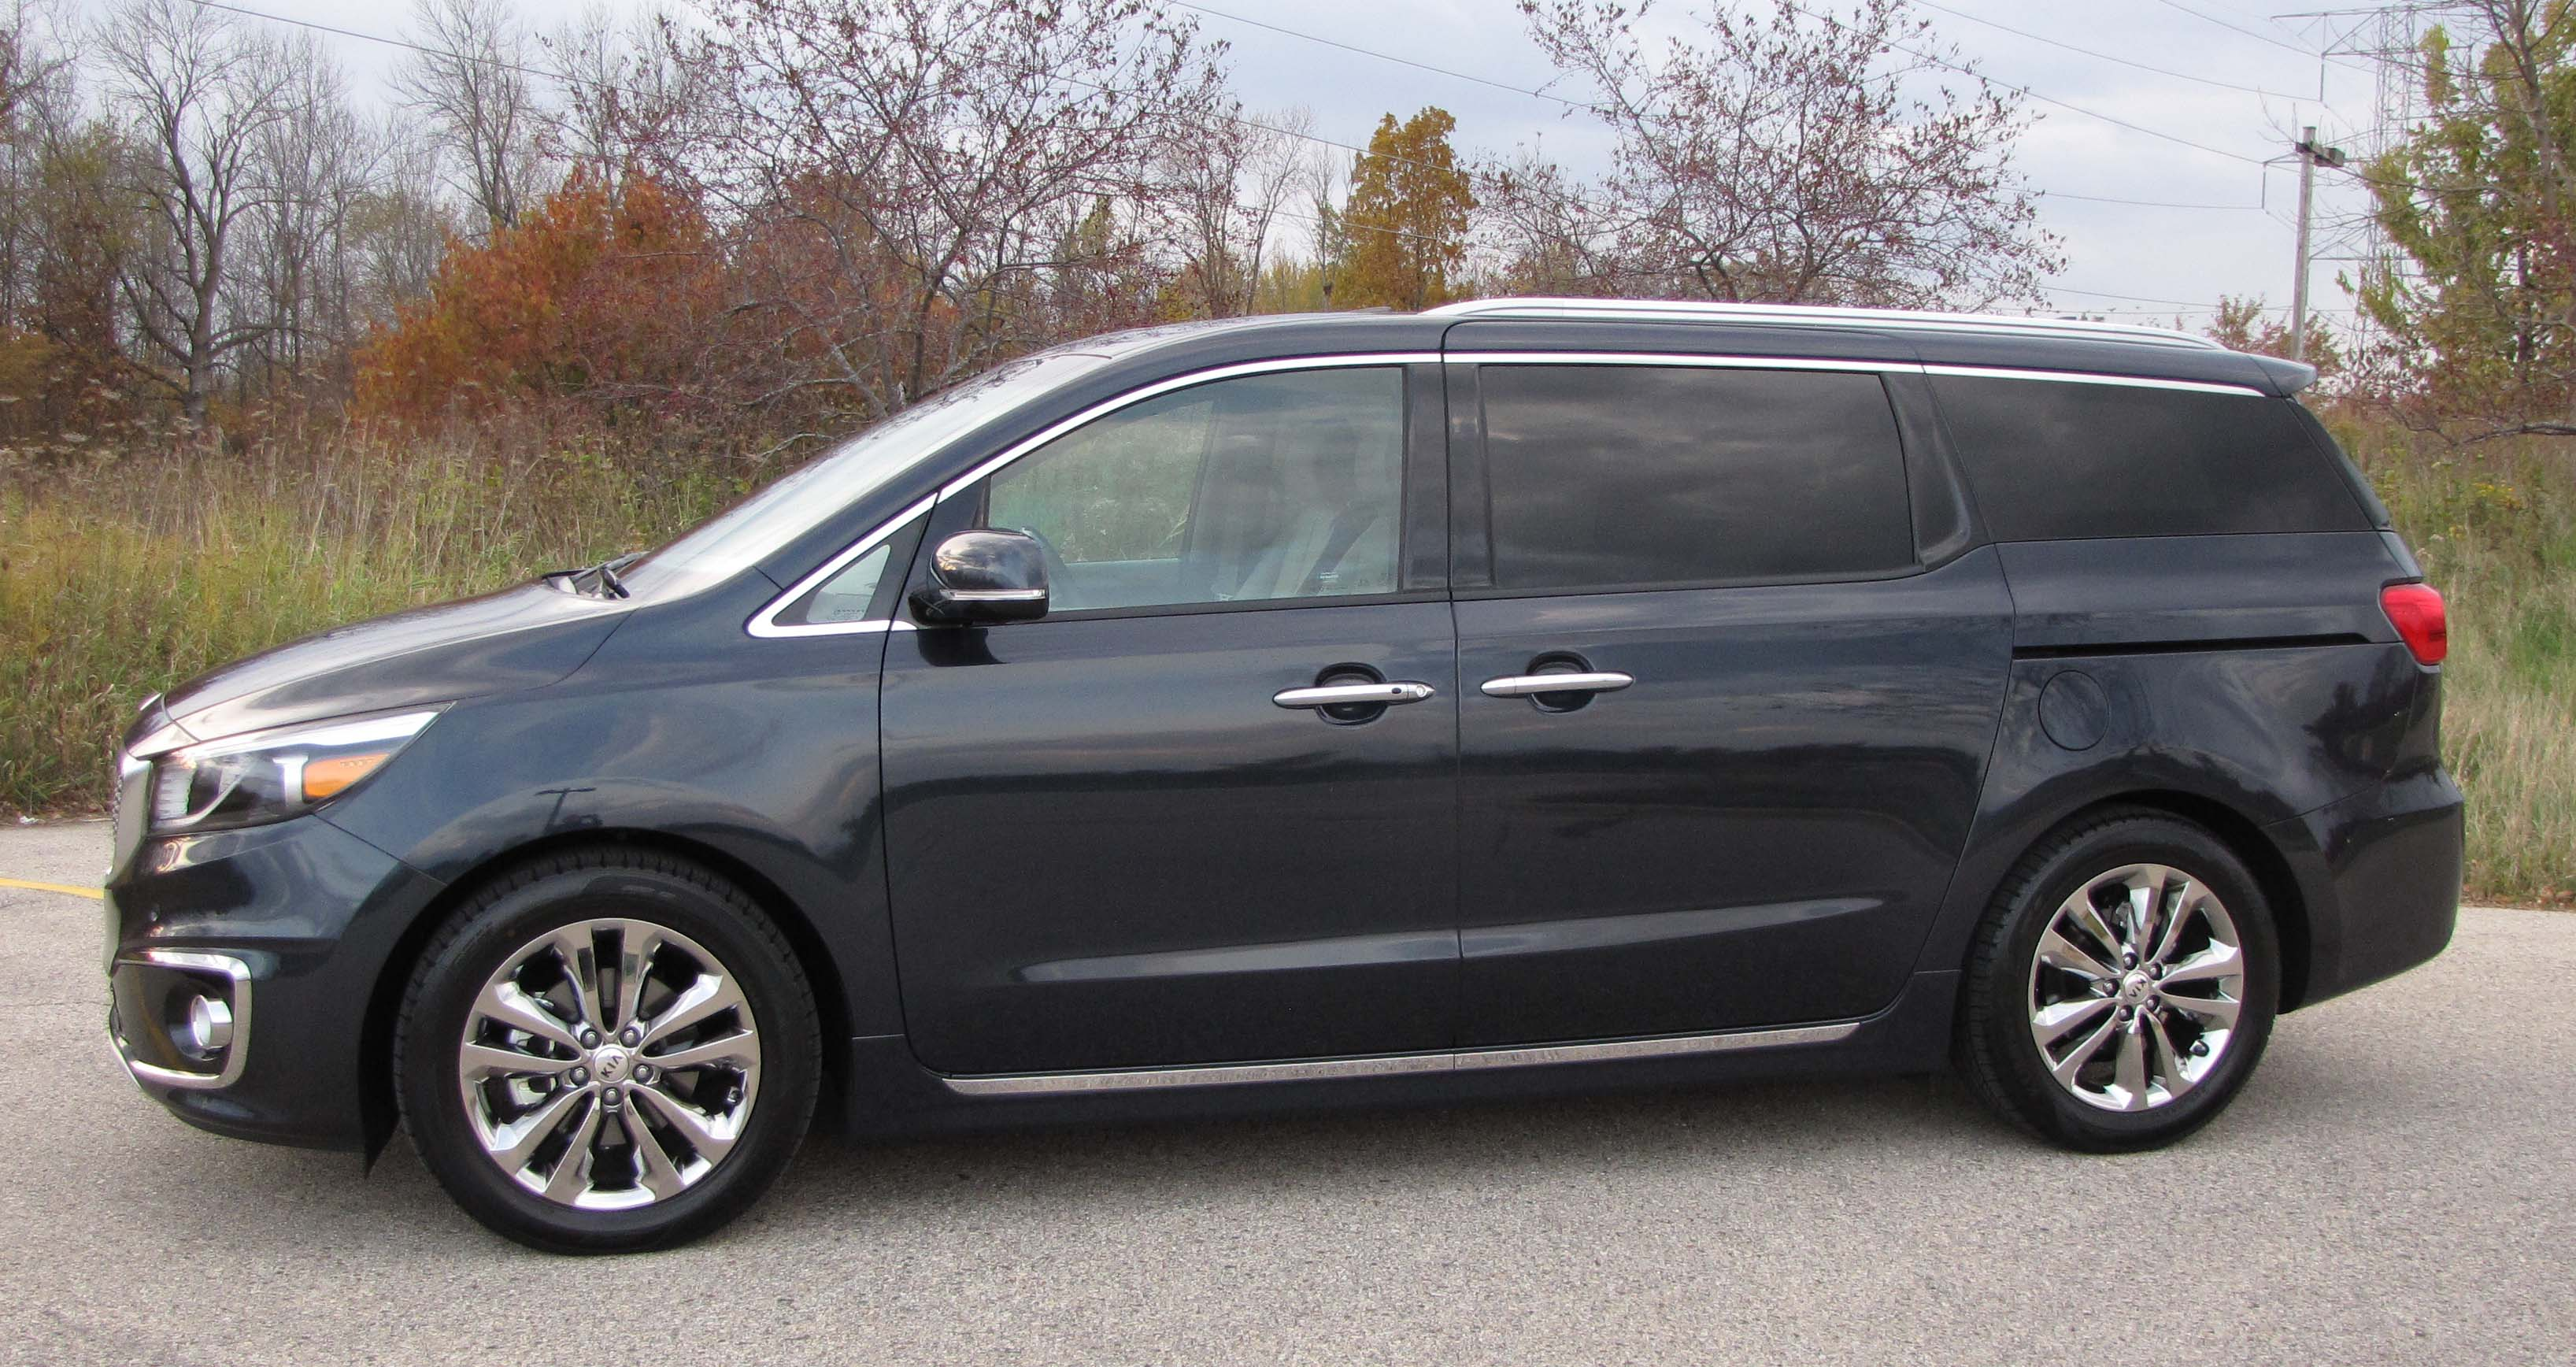 ex to too be kia sedona autos cool foreign story minivan called business